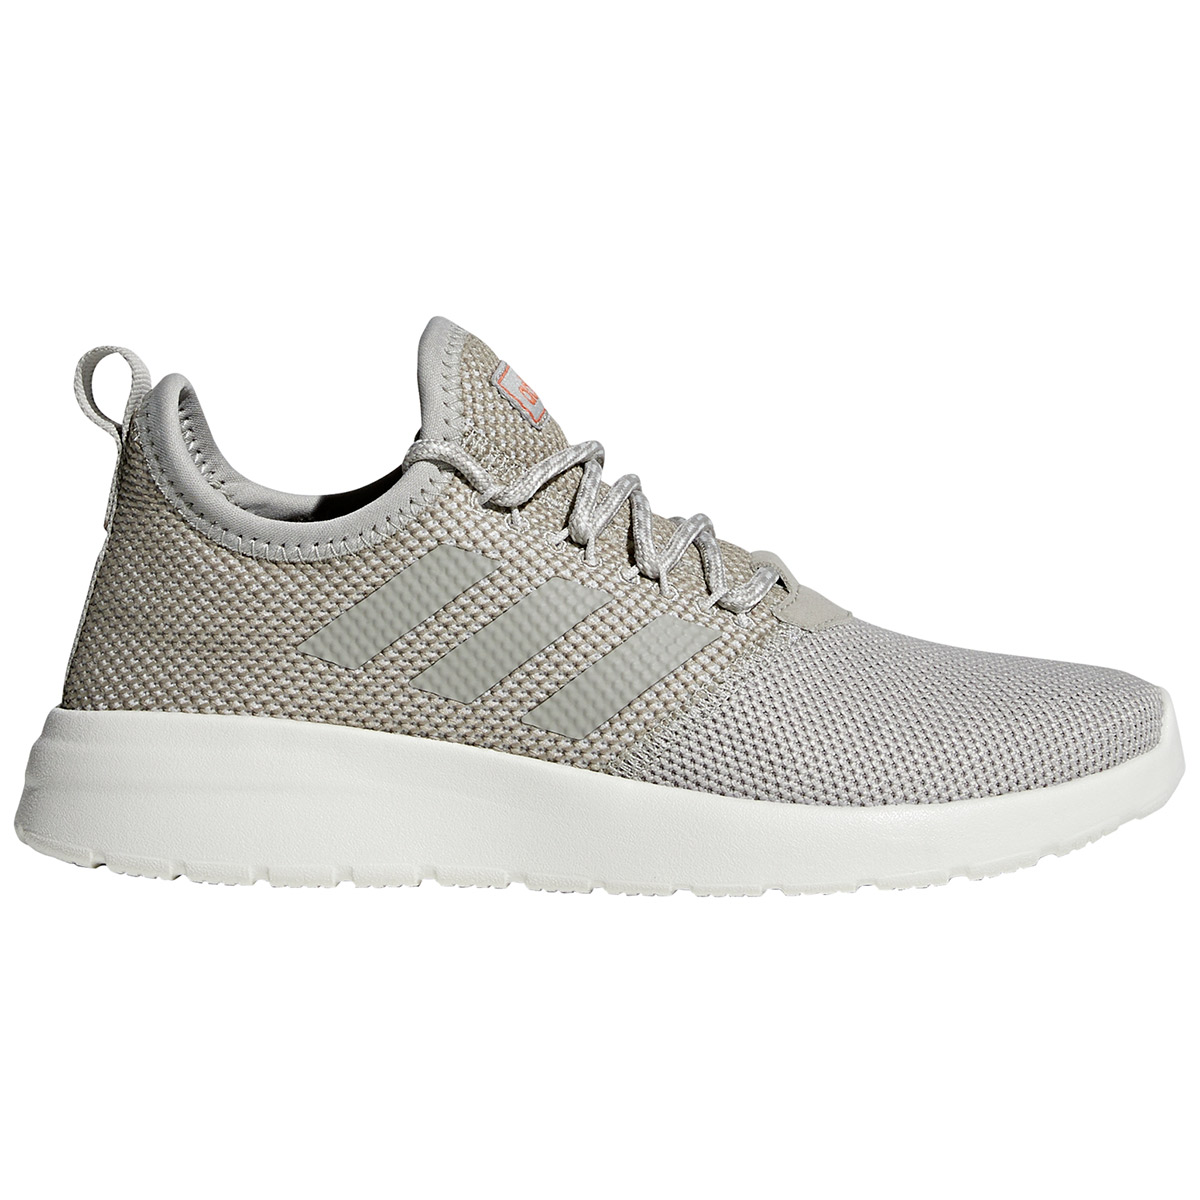 Adidas Women's Lite Racer Rbn Sneakers - White, 9